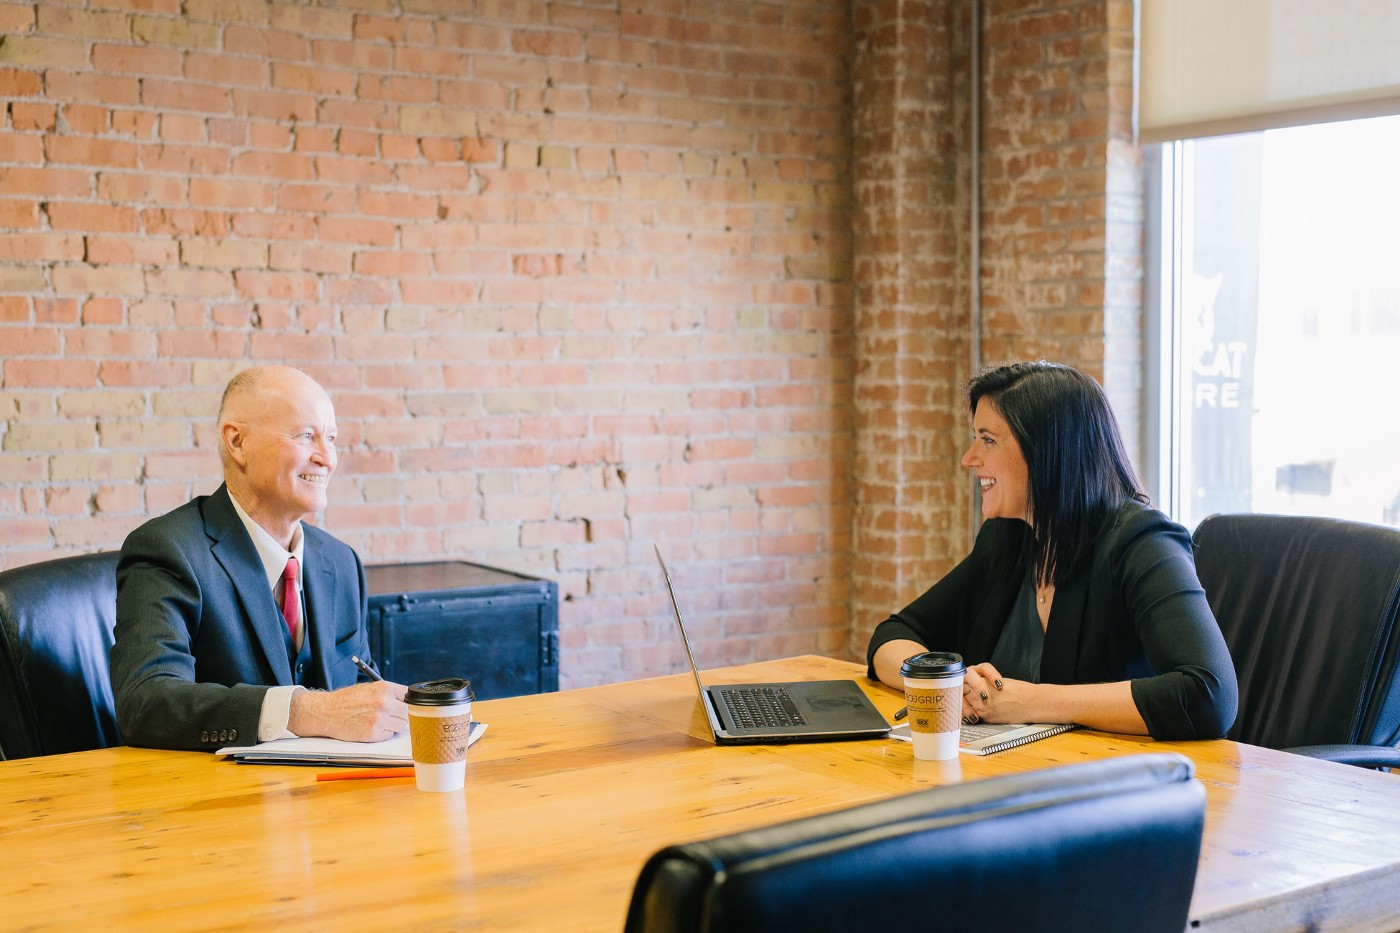 meeting in board room with middle aged man and young woman in business suits